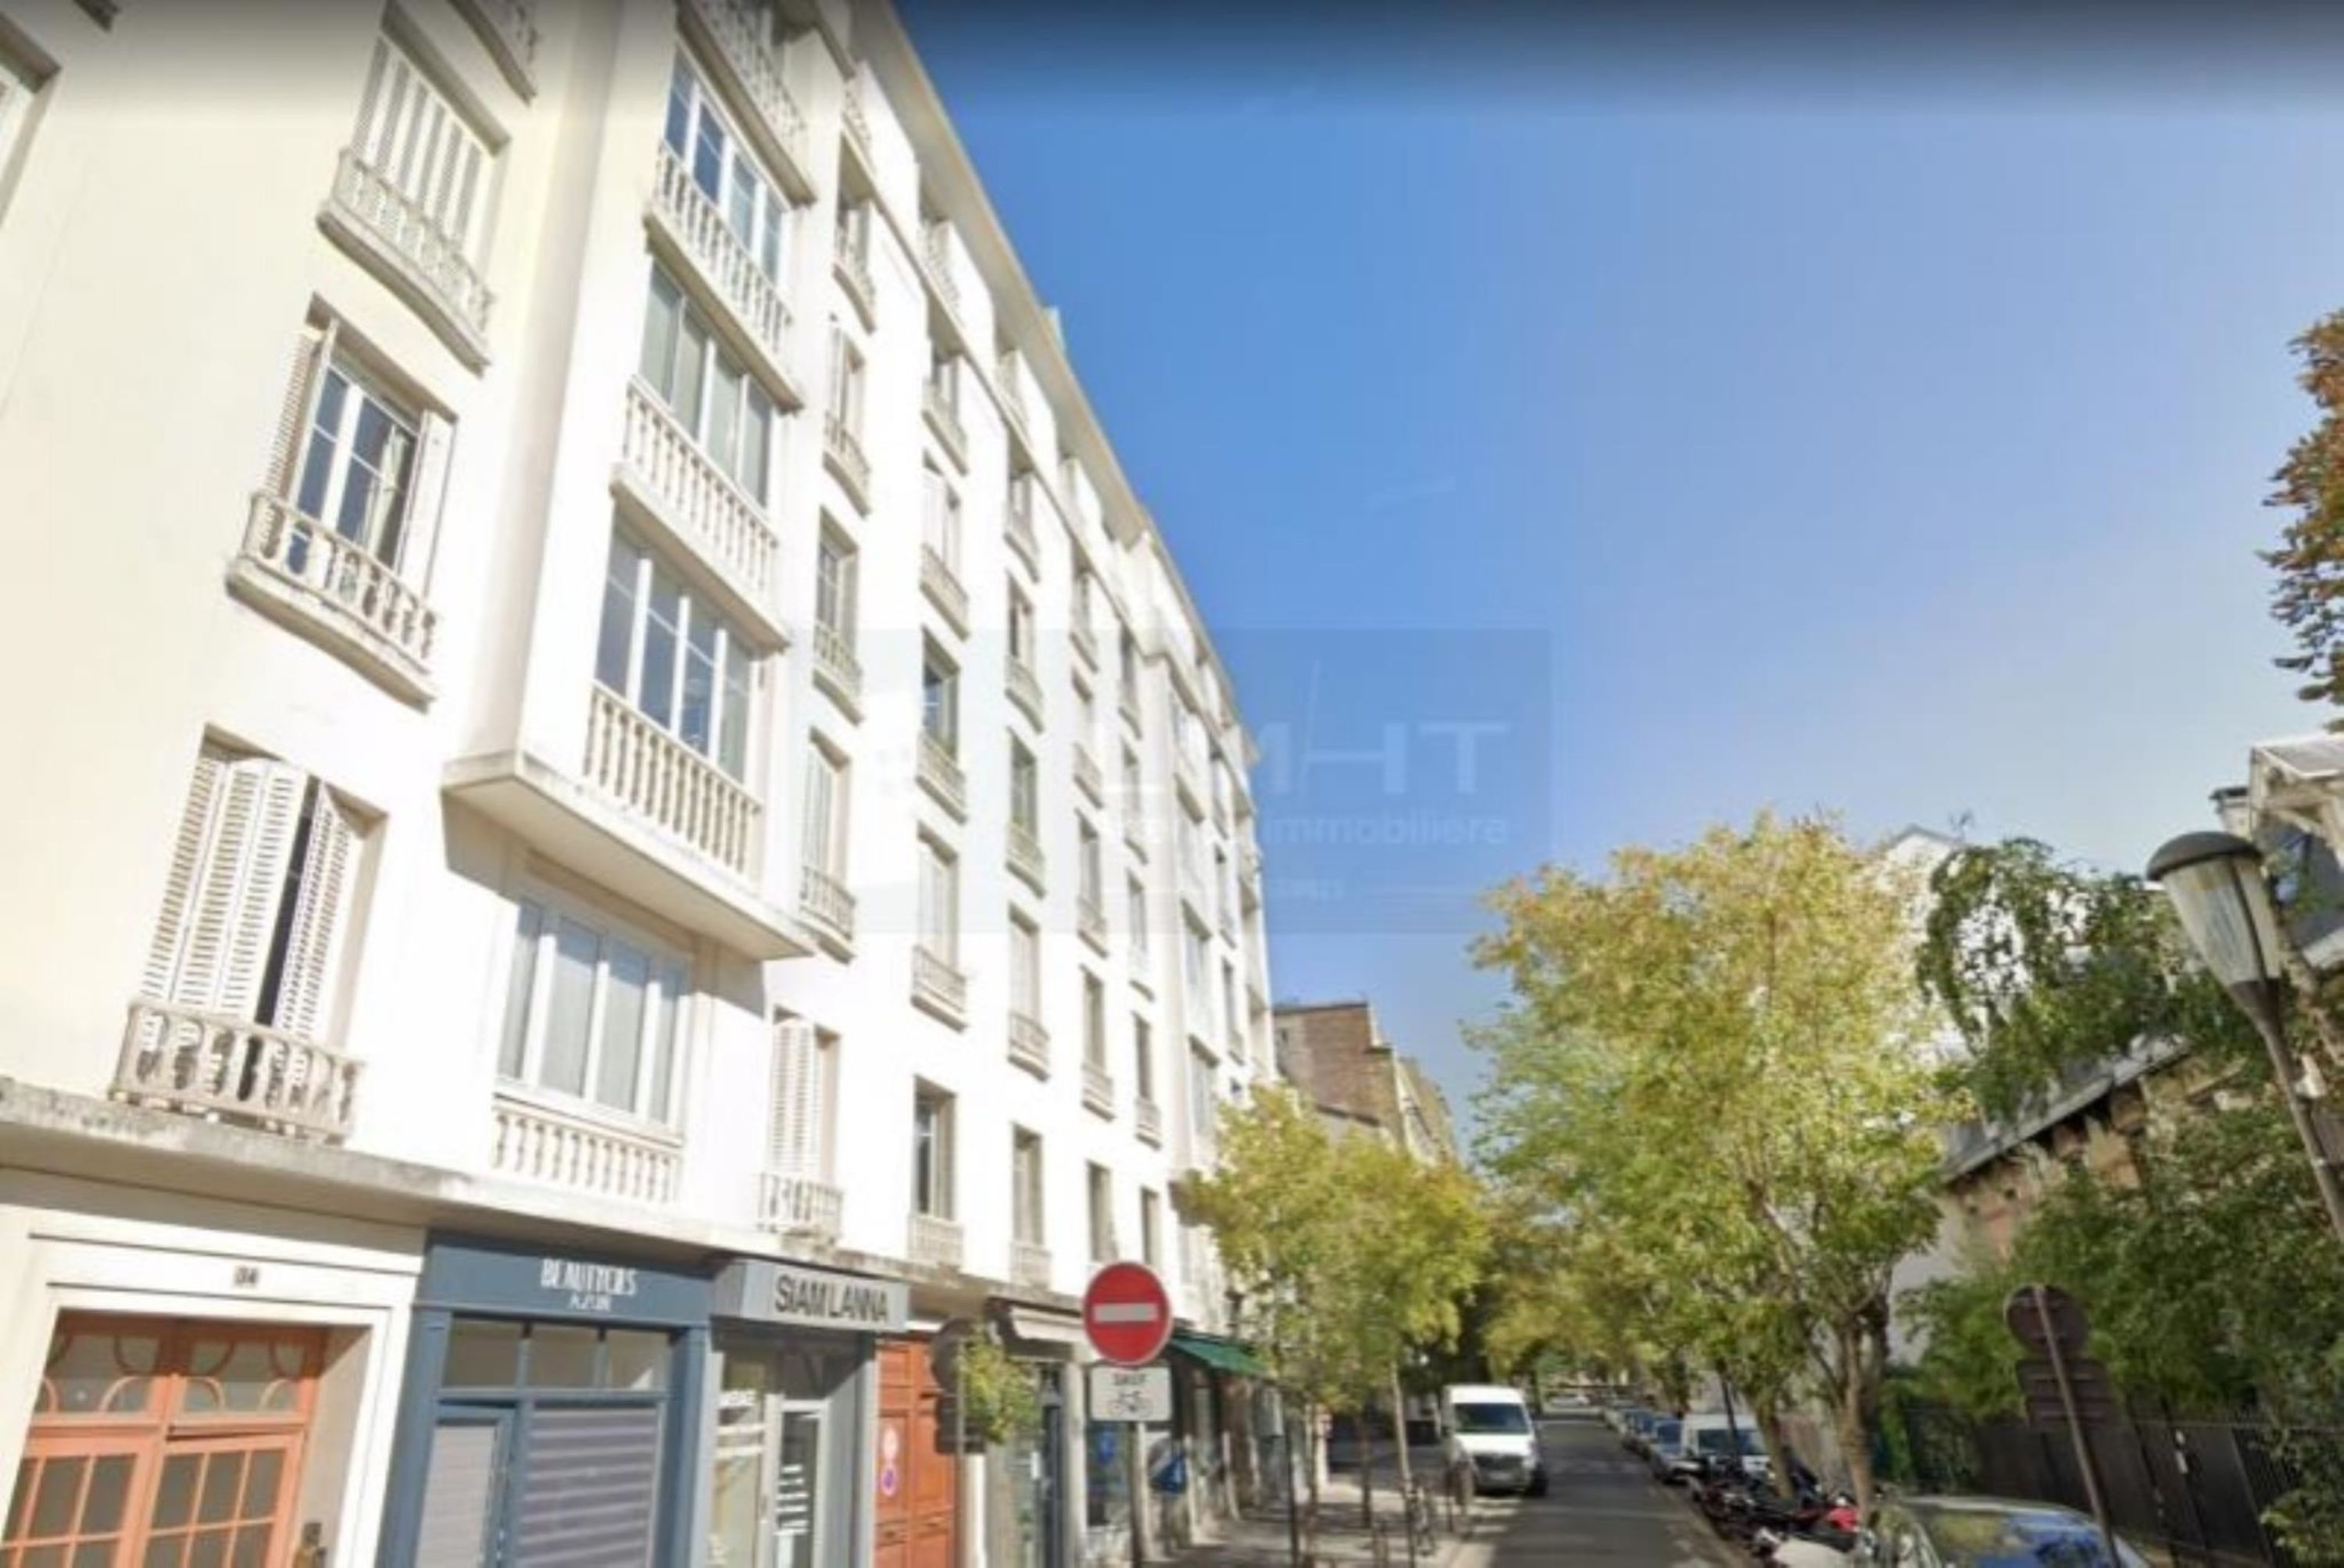 agence immobilière sevres 92 le chesnay 78 achat vente location appartement maison immobilier LMHT ANF NUBKYZDA